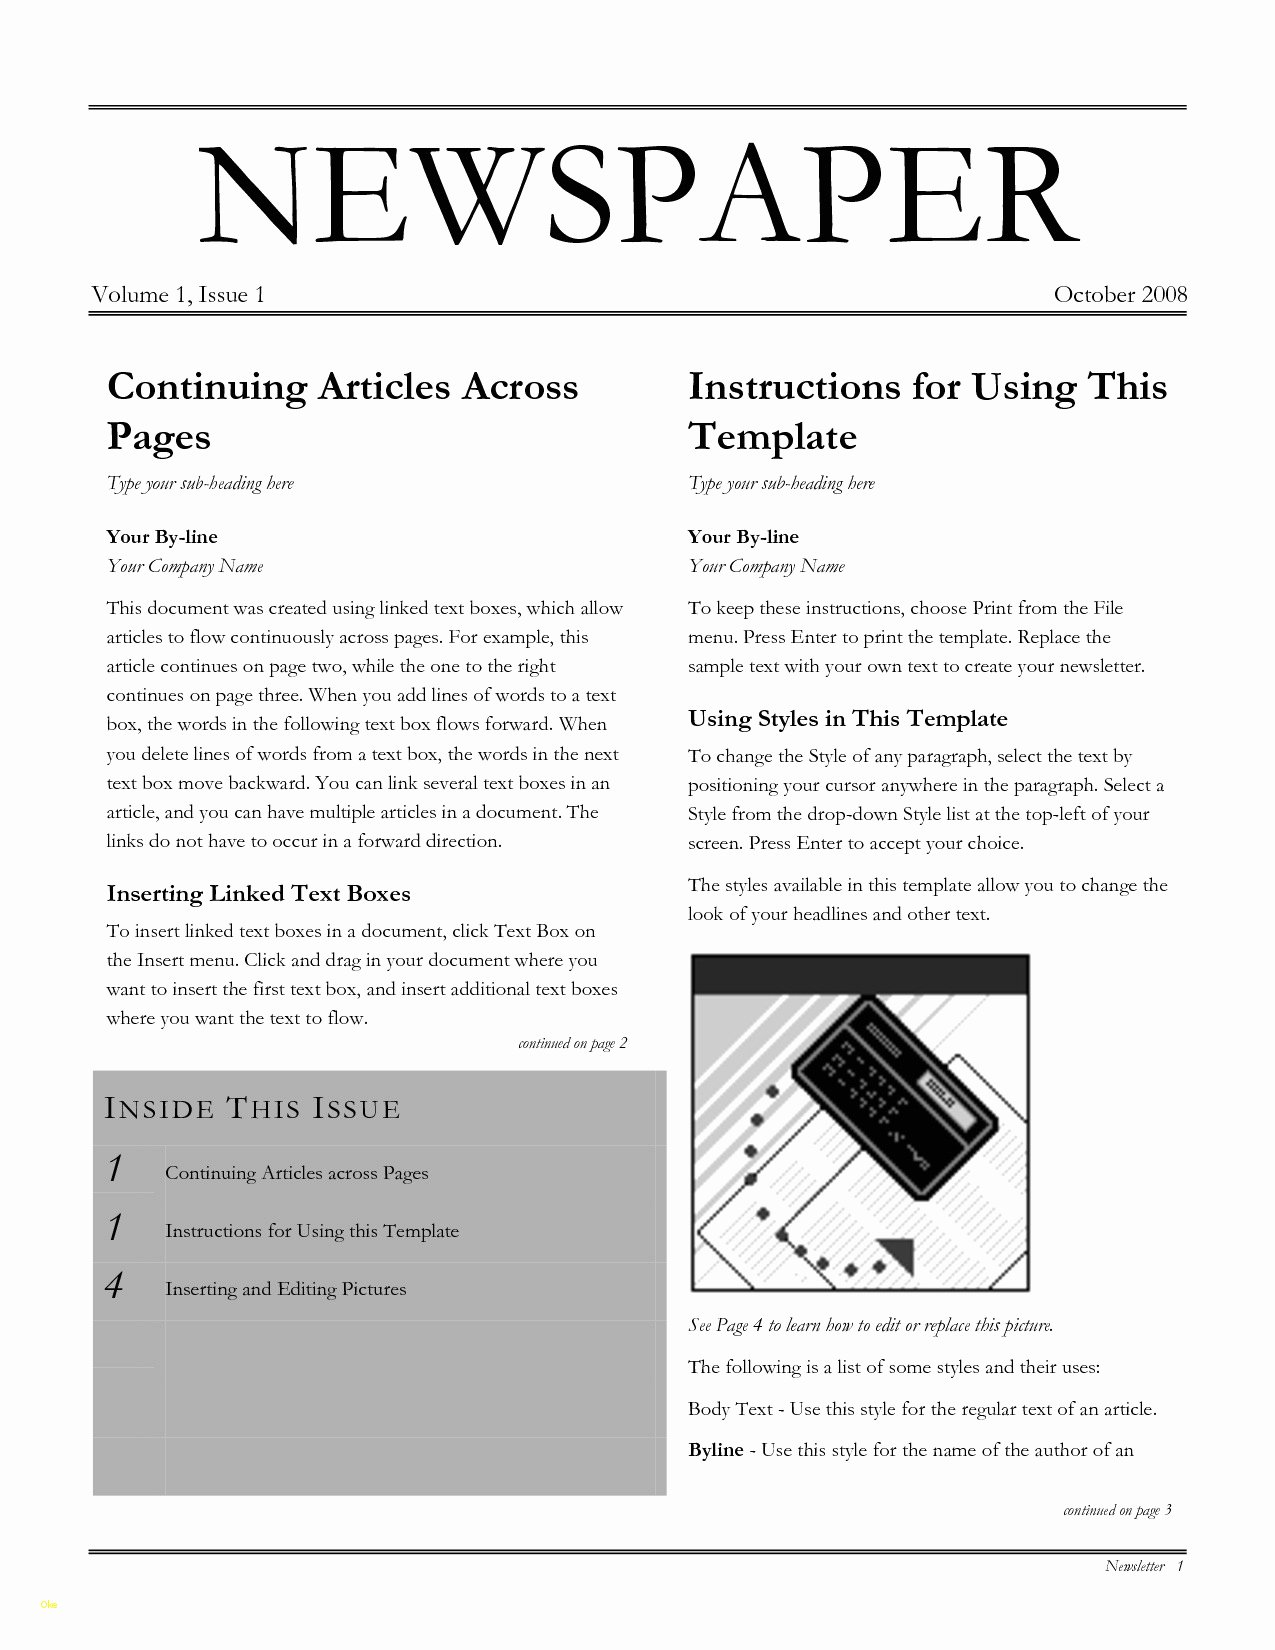 Google Docs Newspaper Template Best Of Best Newspaper Template for Google Docs